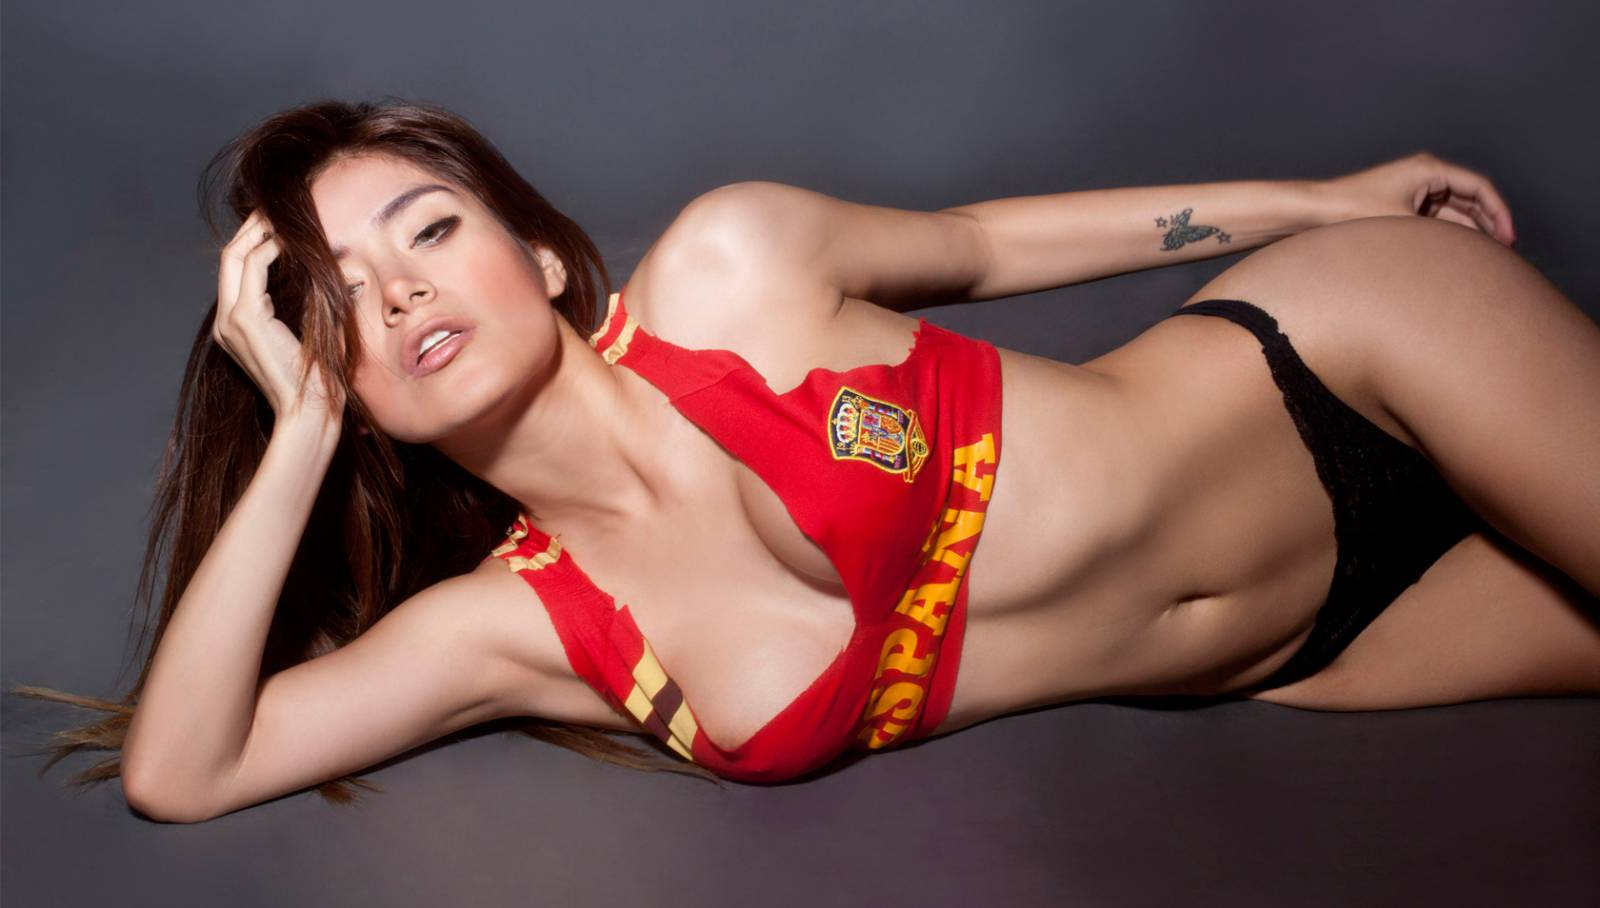 dillonvale spanish girl personals If you are looking for spanish women and men and wish to contact somebody online then join loveawake free dating service sign up and start communicating by e-mail, instant chat or even sms with singles who are waiting to meet someone to love in spain.